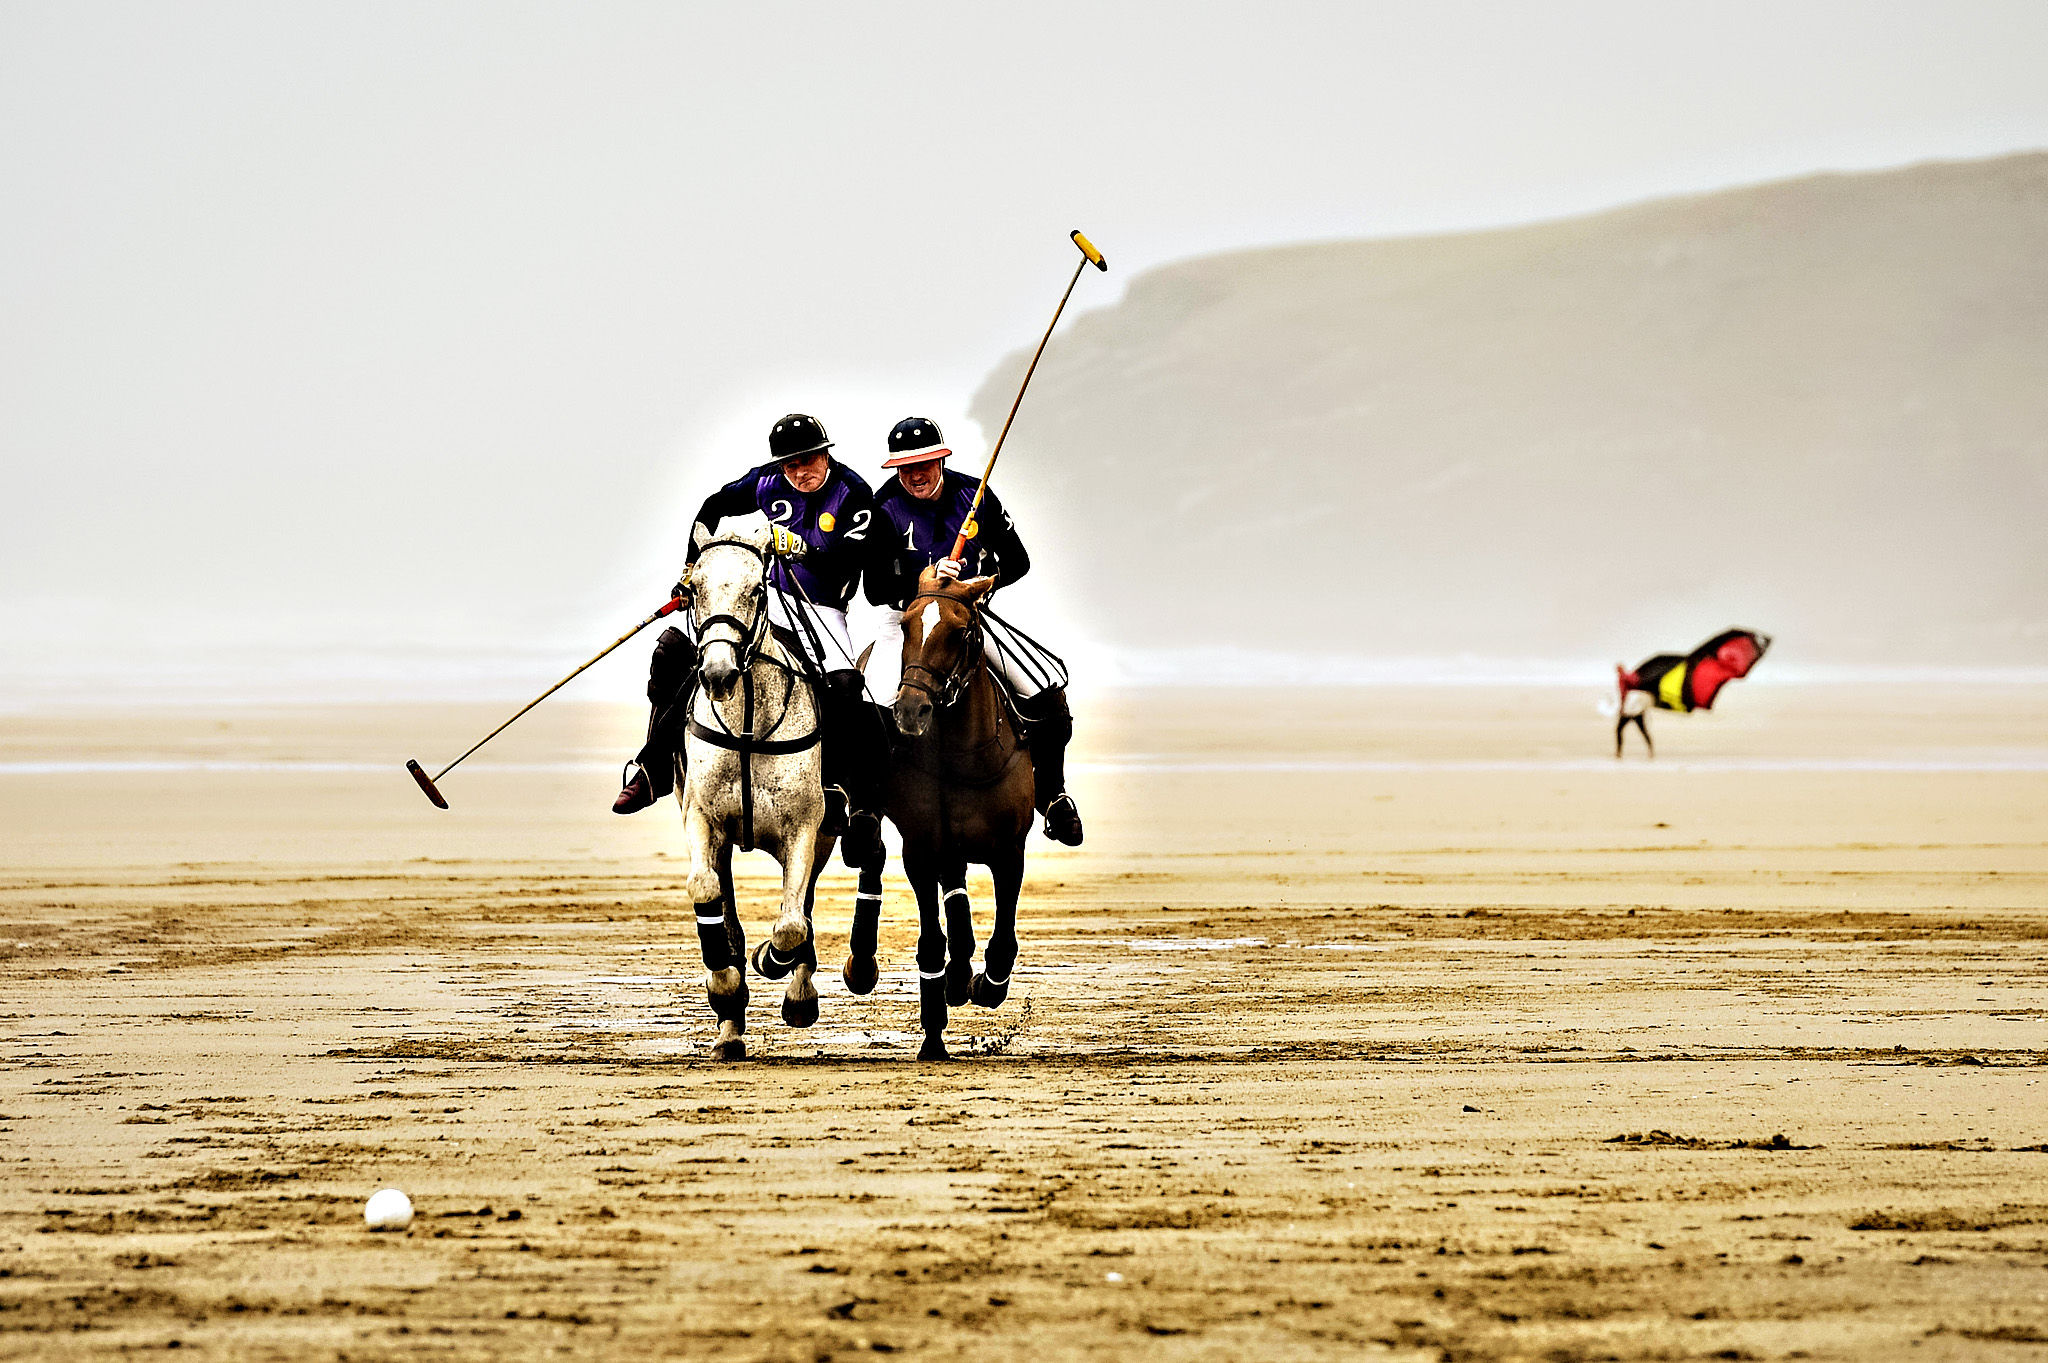 Polo on the Beach photocall...Polo players practice for the upcoming 'Polo on the Beach' match at Watergate Bay beach, Cornwall, in wet and windy conditions. PRESS ASSOCIATION Photo. Picture date: Tuesday June, 2, 2015